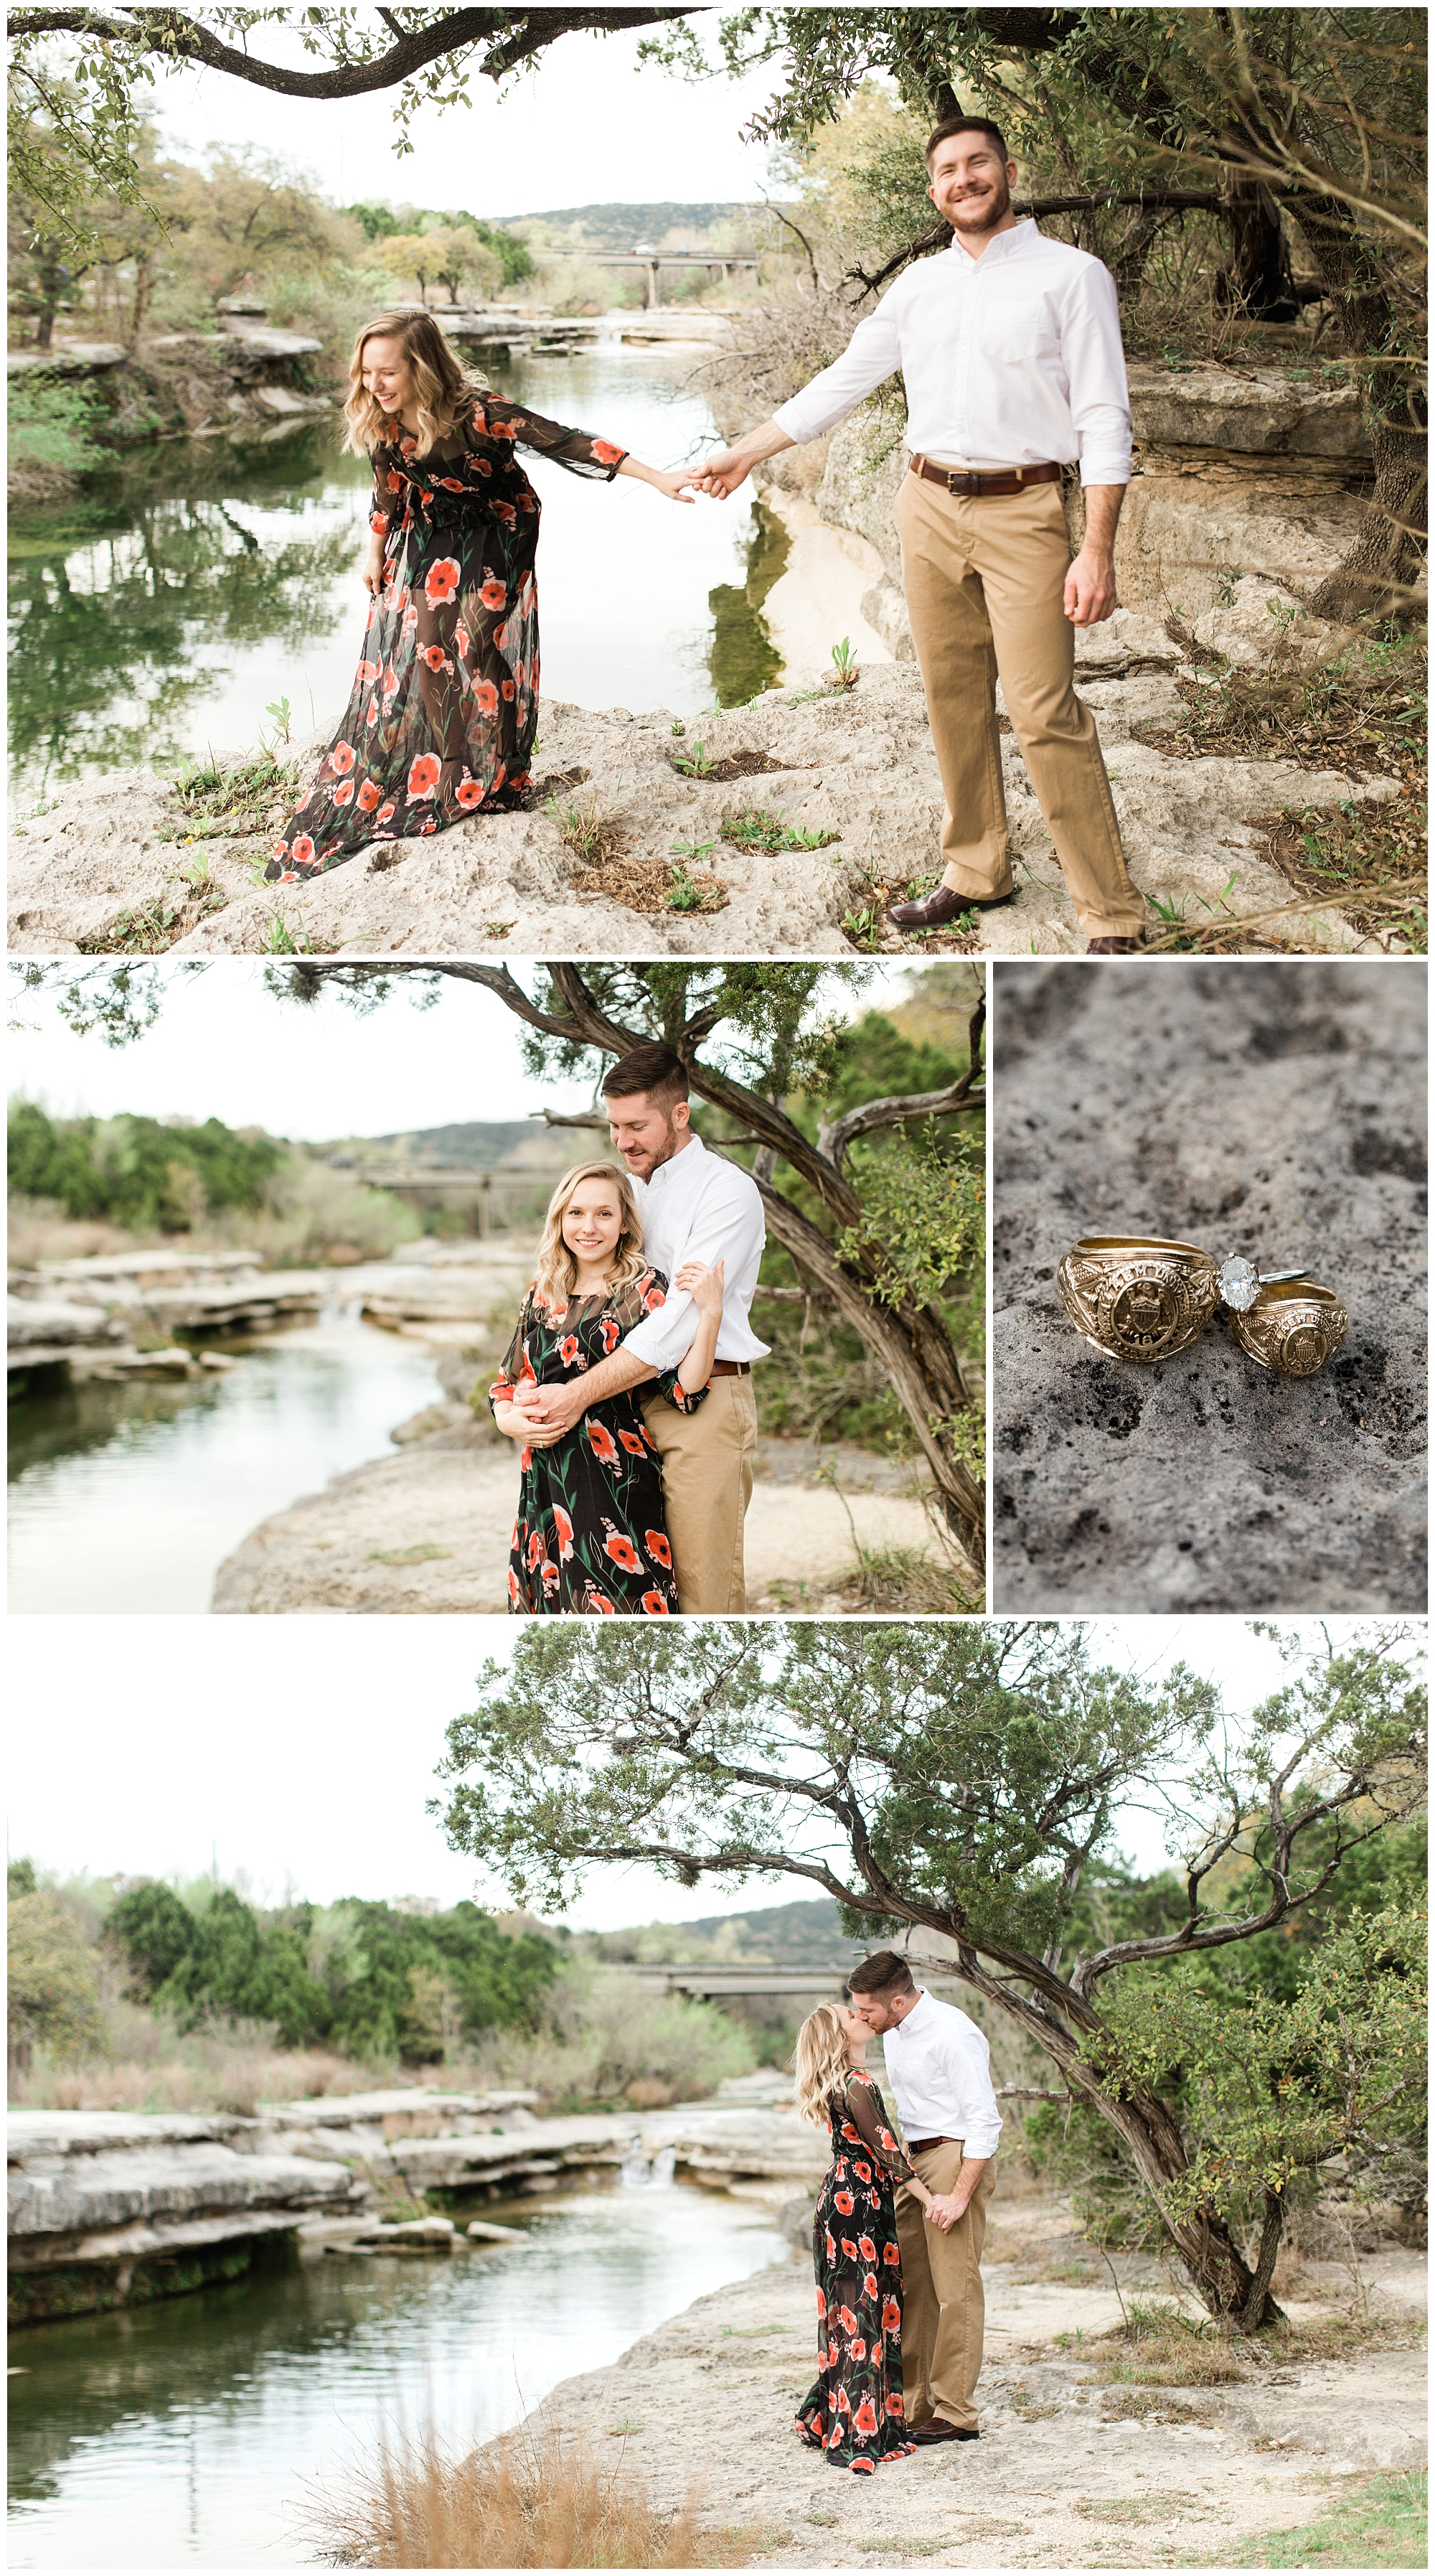 Bull_Creek_Engagement_Session_0006.jpg